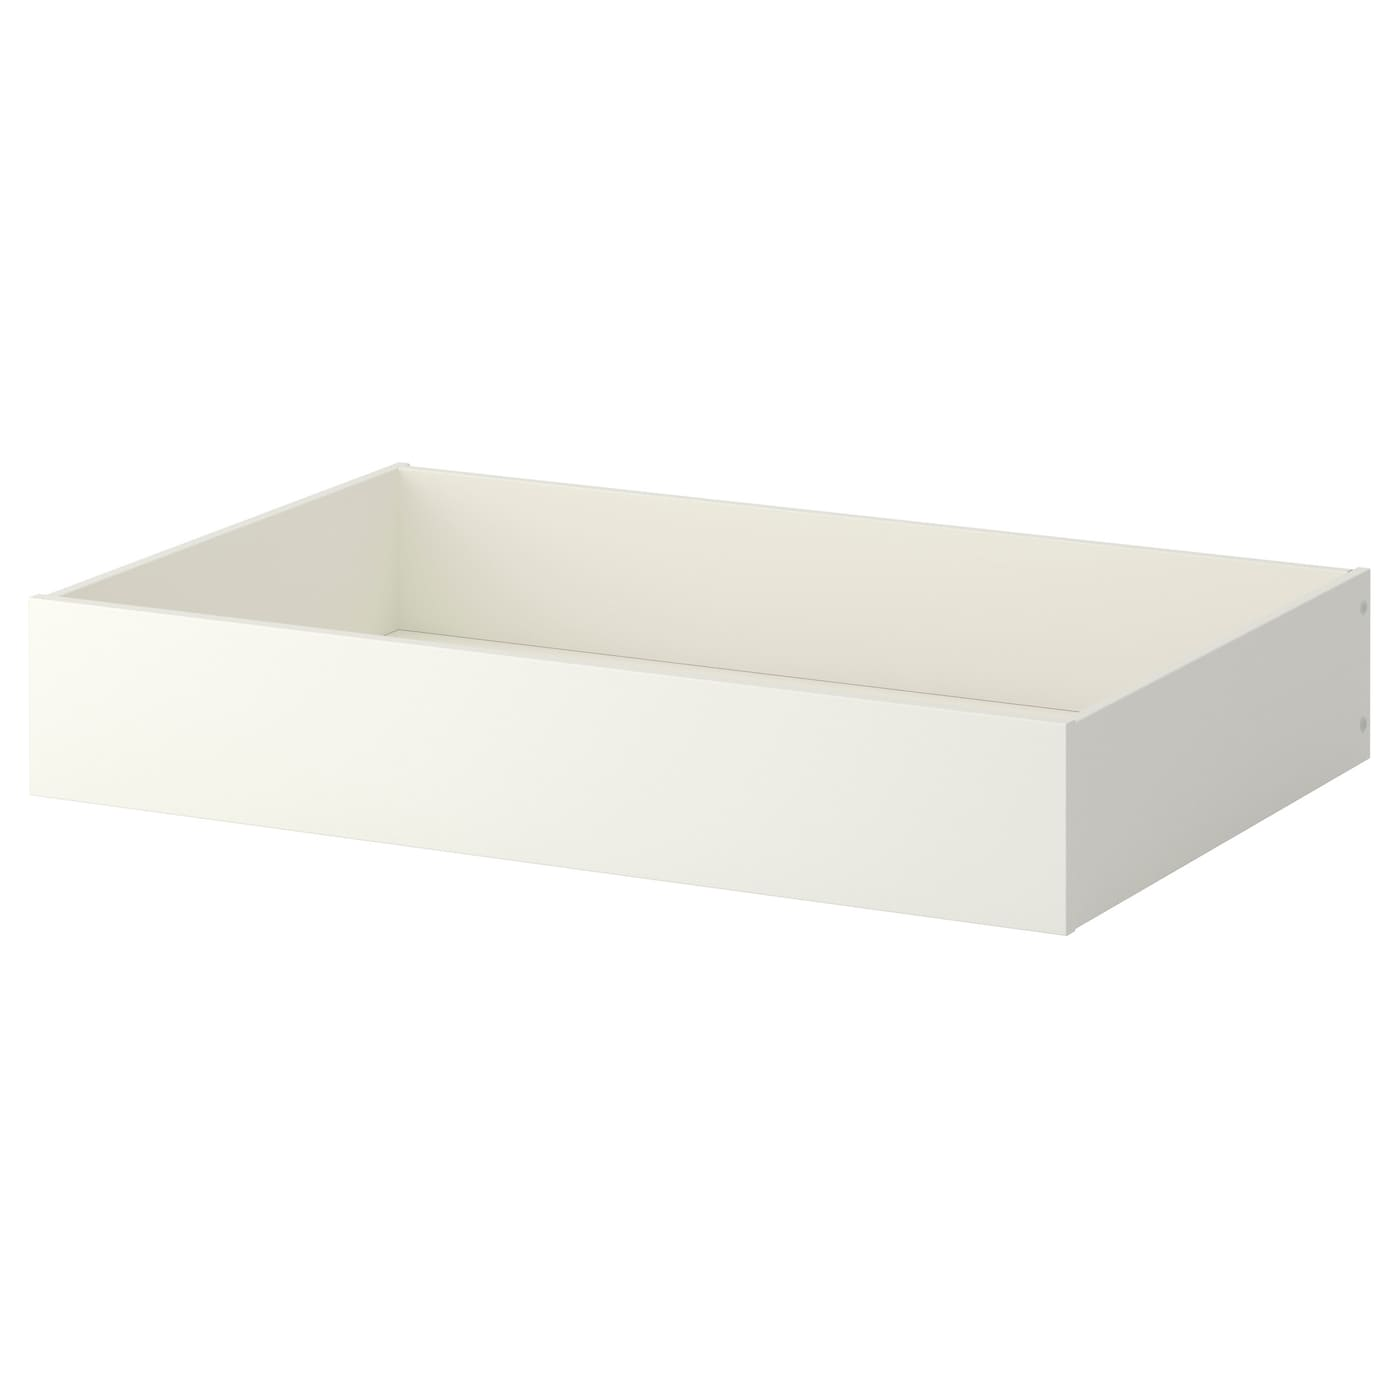 Komplement drawer white 100x58 cm ikea for Ikea complementi